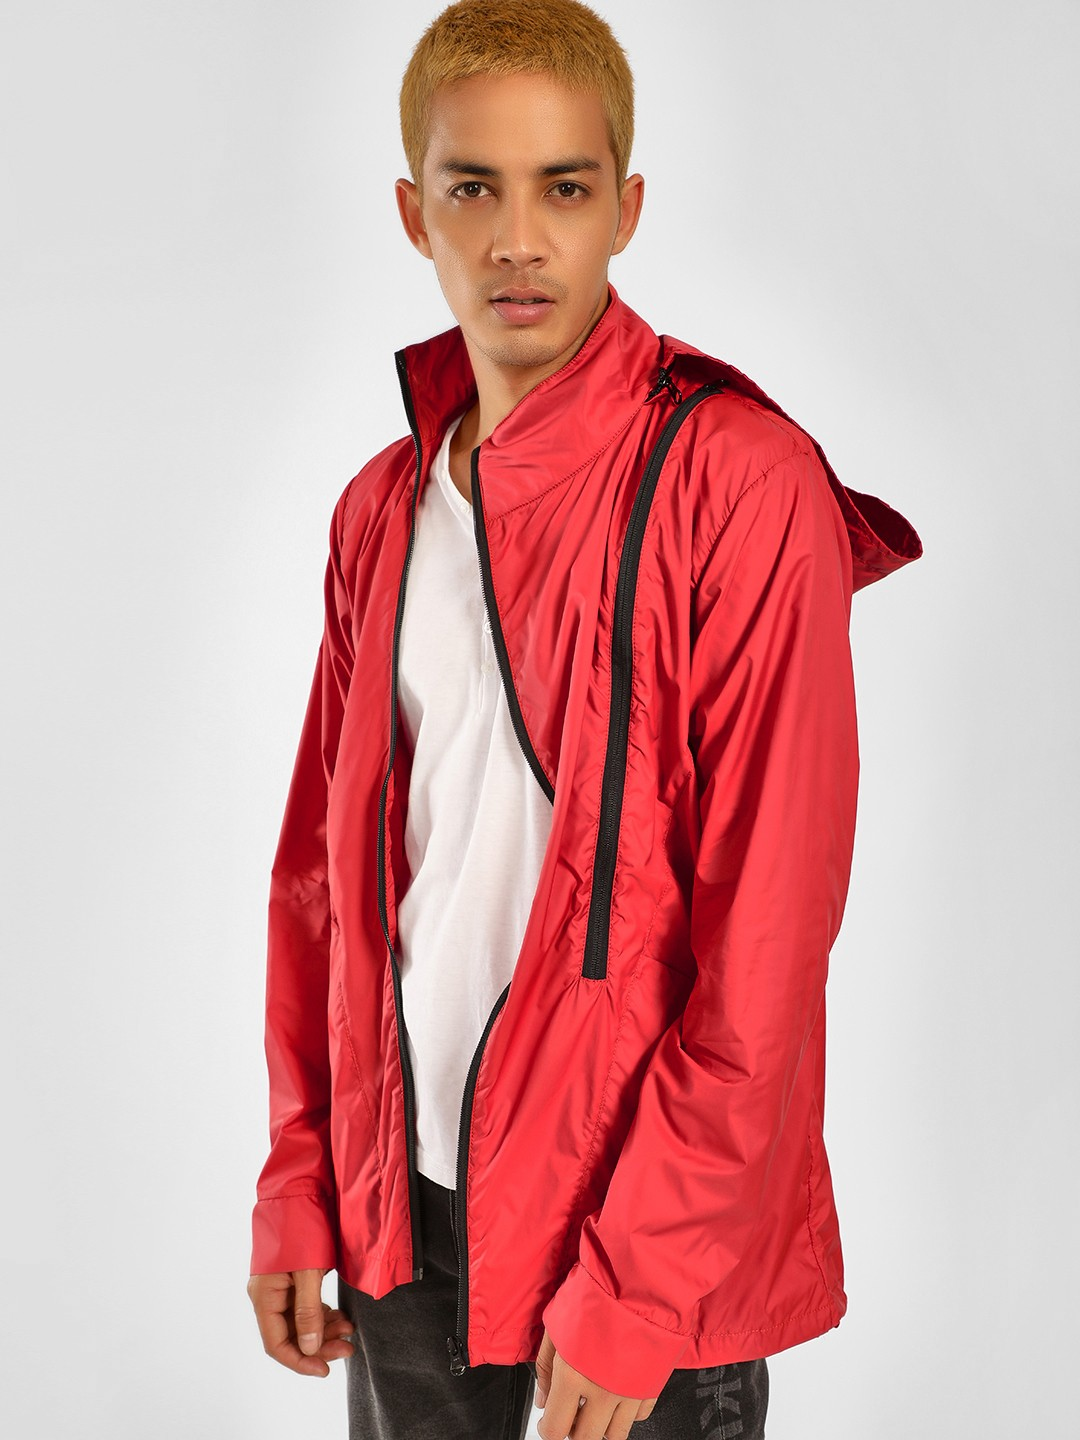 SKULT By Shahid Kapoor Red Panelled Stand Collar Jacket 1